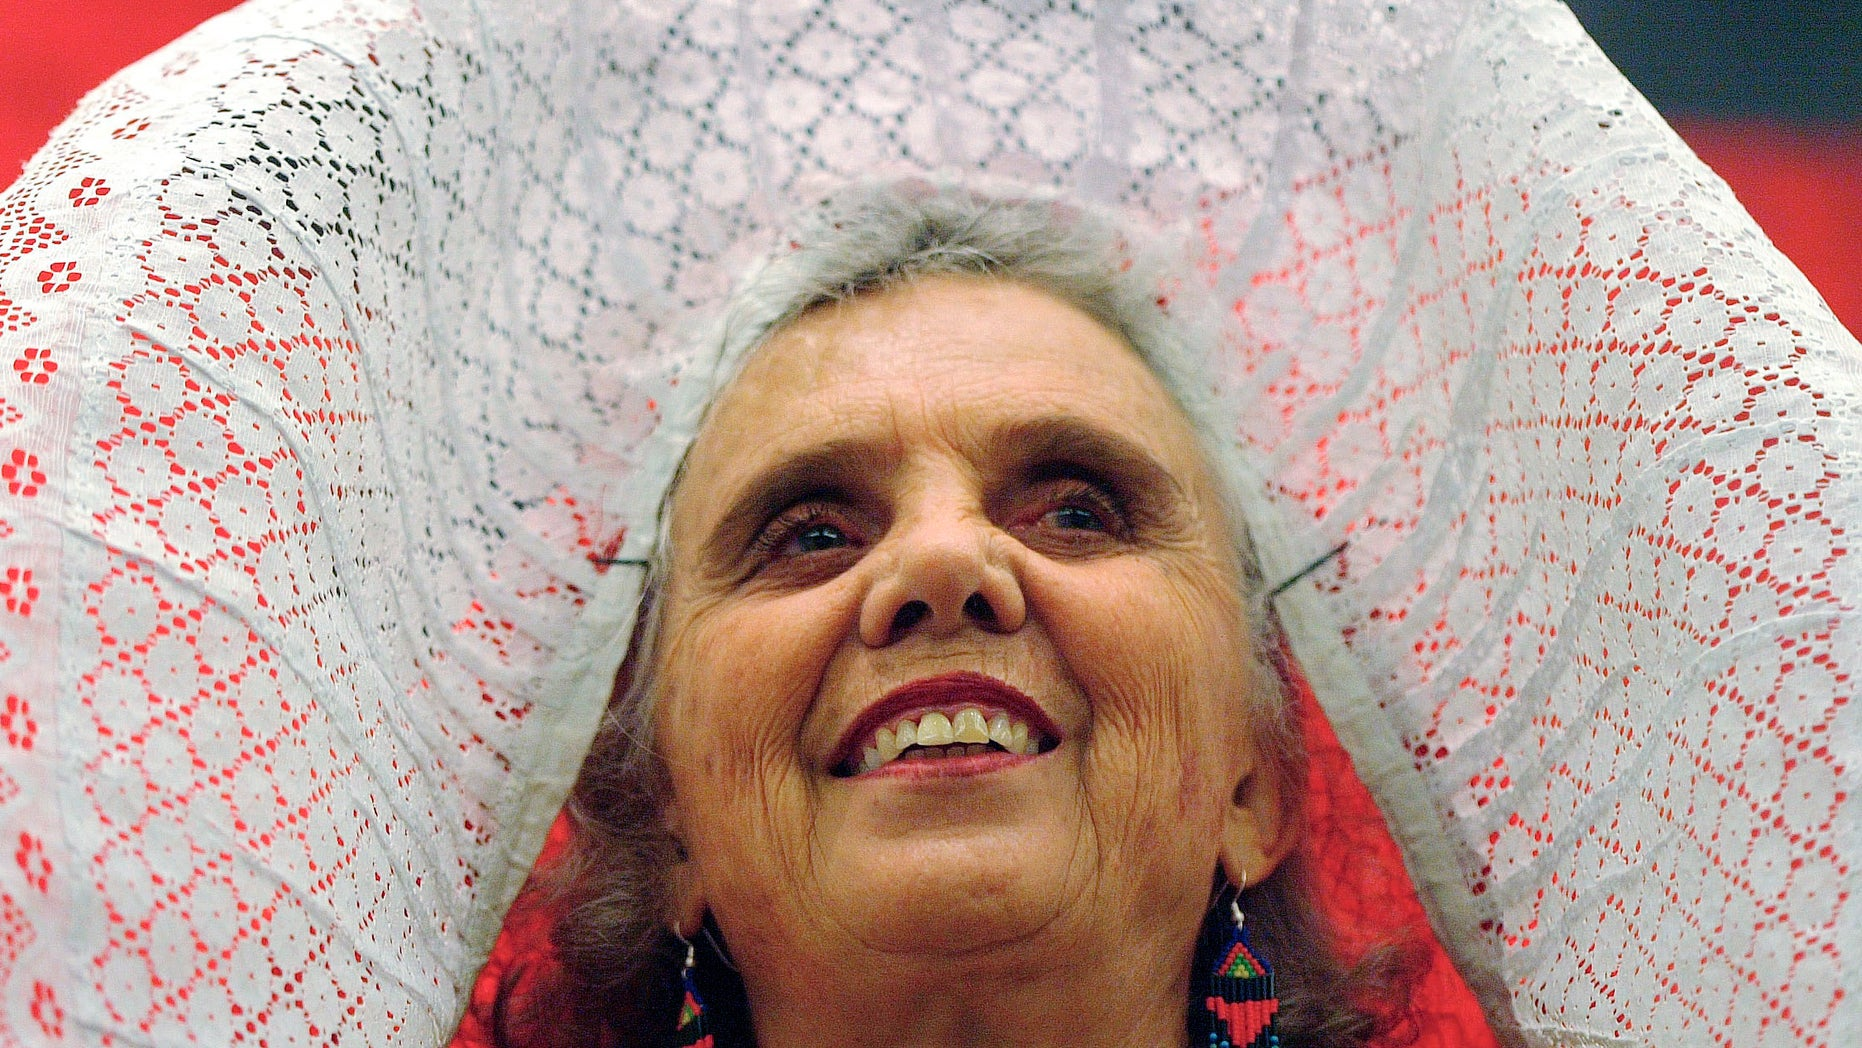 """FILE - In this Nov. 29 2005 file photo, Mexican author Elena Poniatowska, wearing a traditional tehuana outfit, smiles during the presentation of her new book """"El Tren Paso Primero"""", """"The Train Passed First"""", during the 19th Guadalajara International Book Fair in Guadalajara City, Mexico. Poniatowska has won the 2013 Cervantes Prize, the Spanish-speaking world's highest literary honor it was announced on Tuesday Nov. 19, 2013. The euro 125,000 prize generally alternates between Spanish and Latin American writers. Previous winners include Carlos Fuentes of Mexico, and Nobel prize winners Mario Vargas Llosa of Peru and Spain's late Camilo Jose Cela. They are presented each April 23, the anniversary of the death of Miguel de Cervantes, author of """"Don Quijote."""" (AP Photo/Guillermo Arias, File)"""